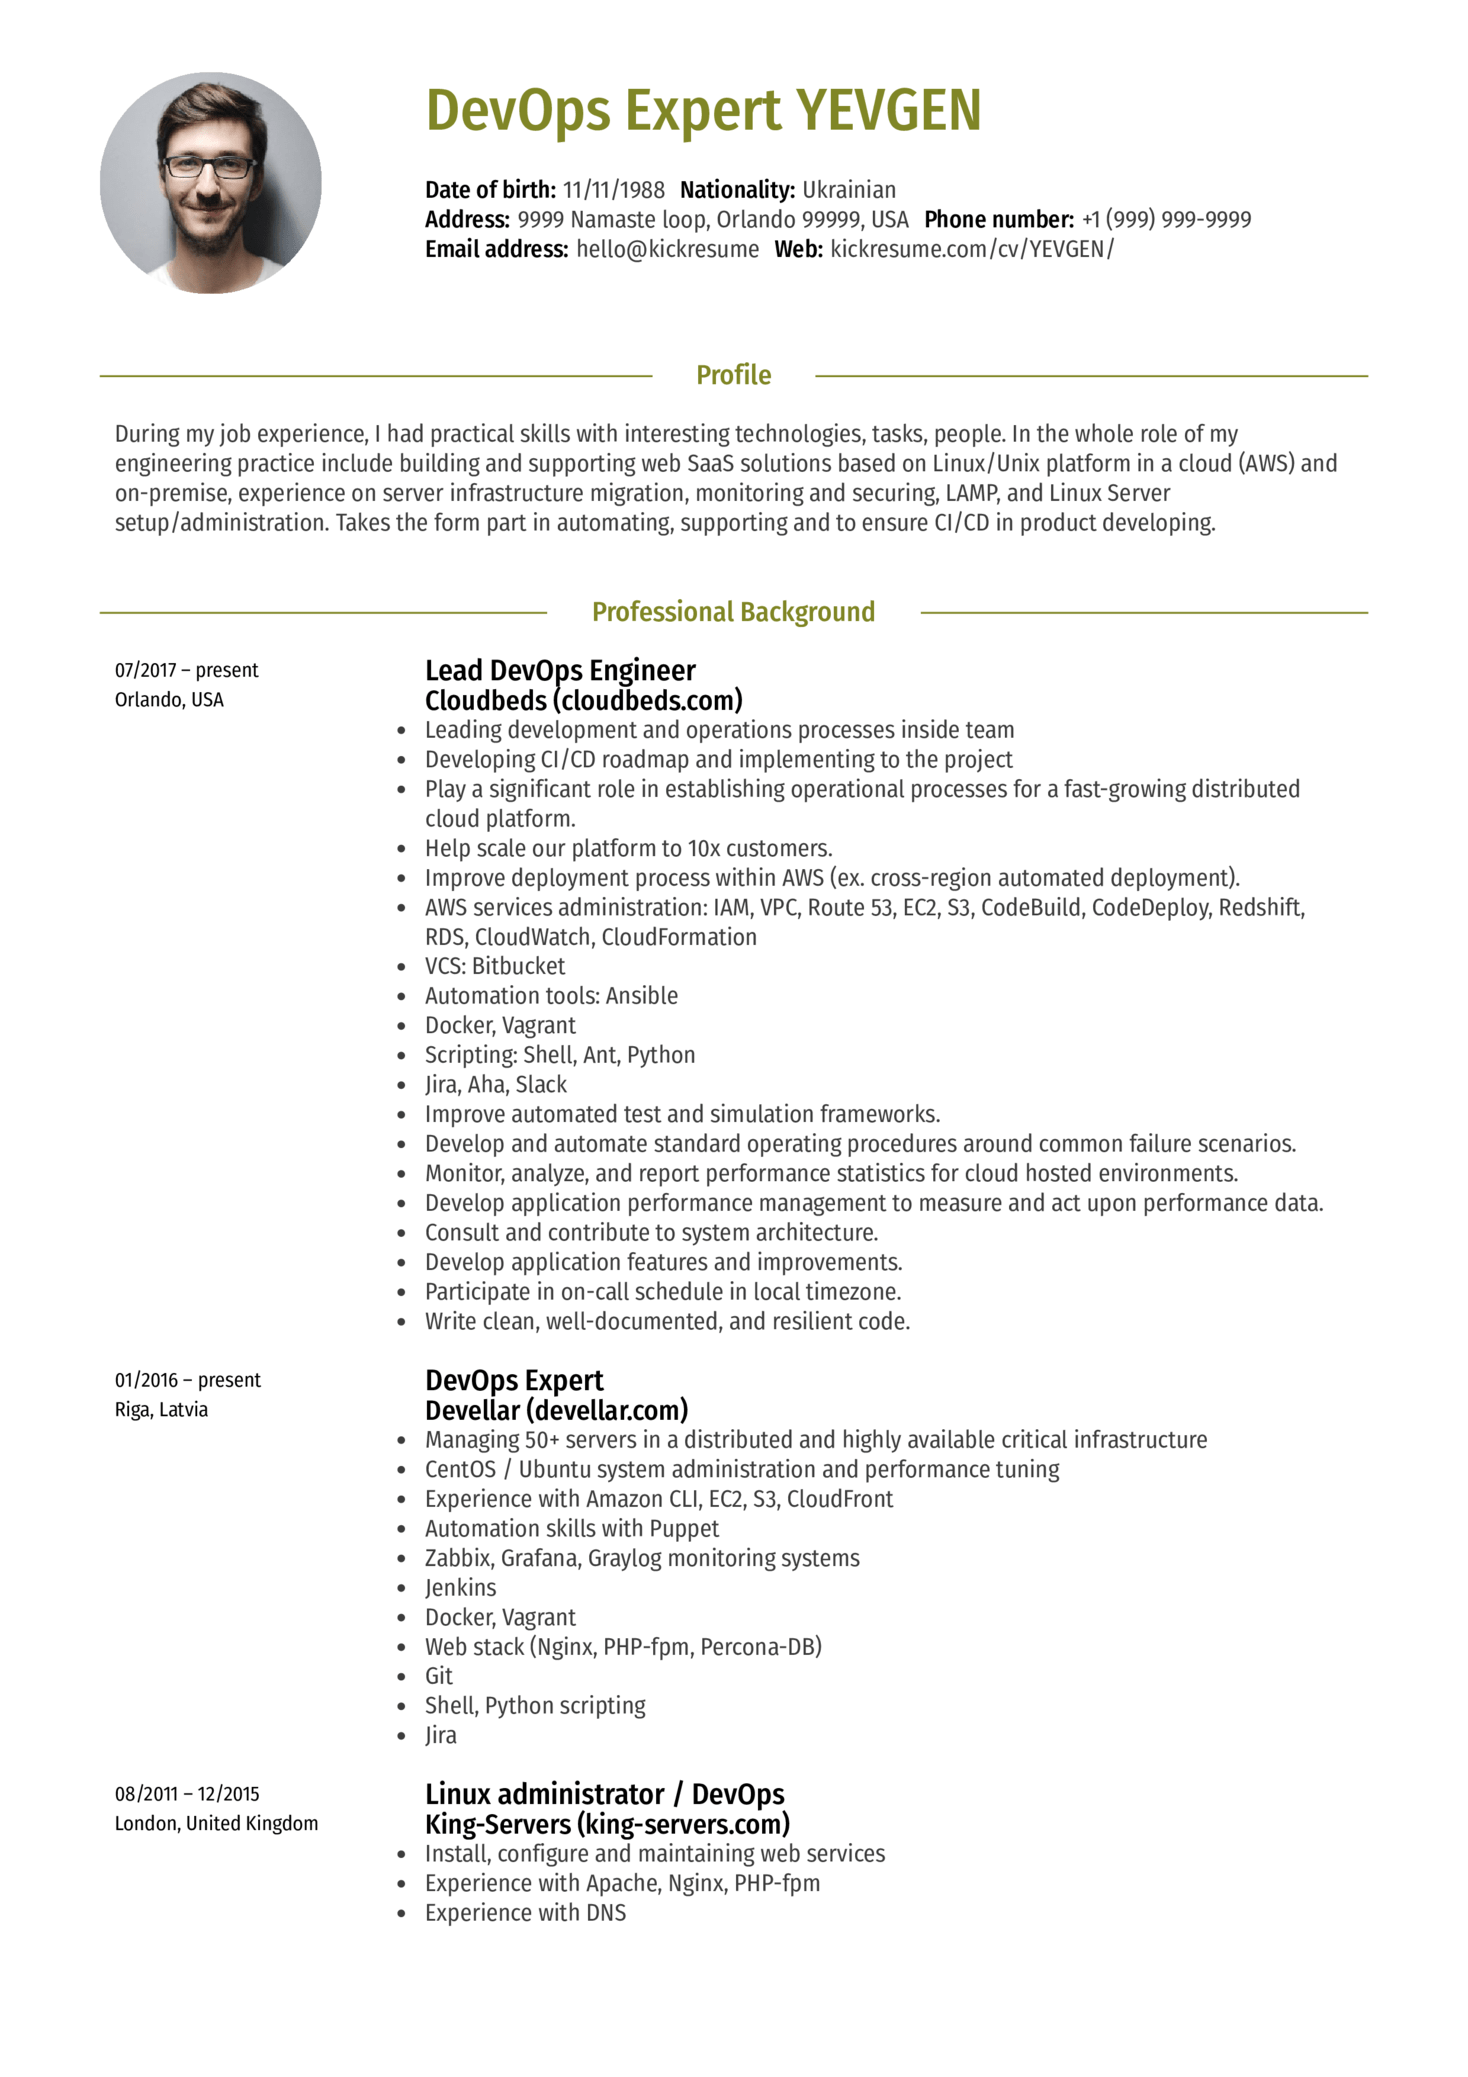 Lead Devops Engineer Resume Sample (parte 1)